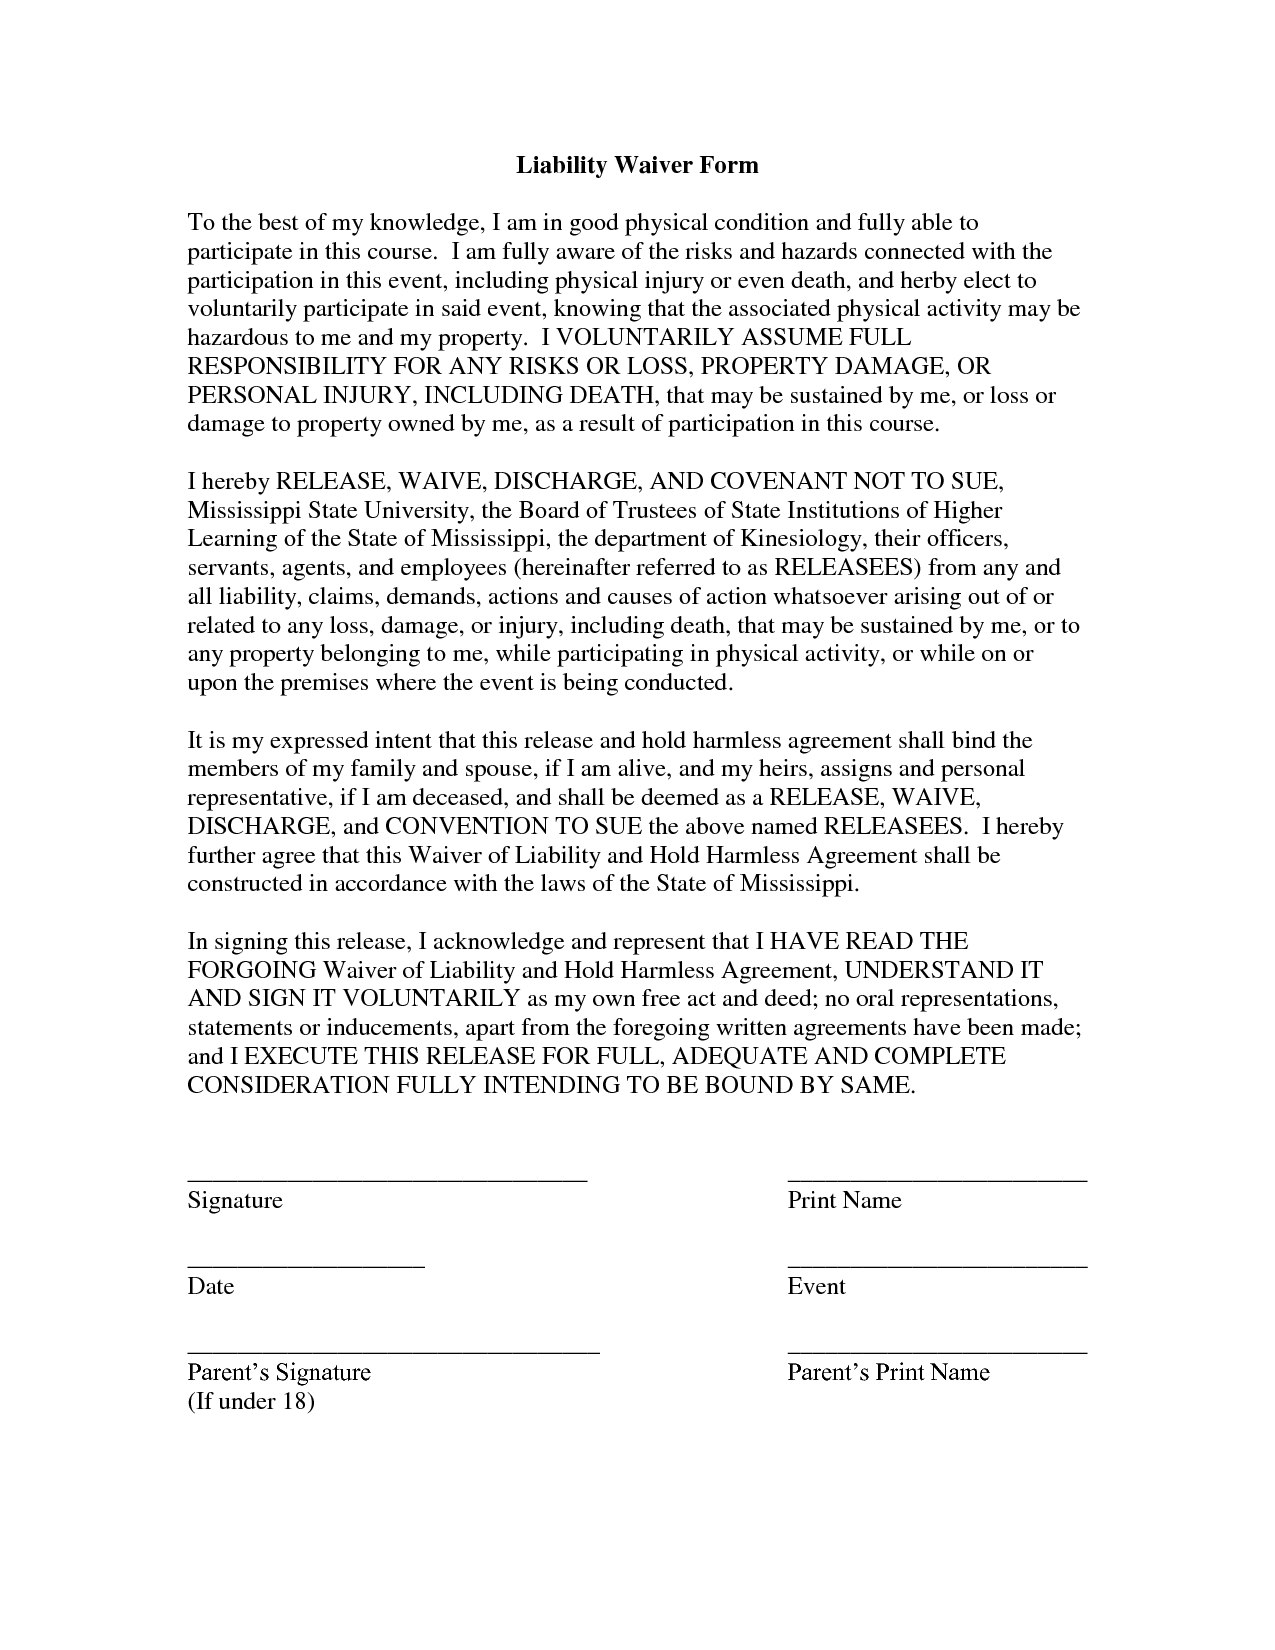 Free Printable Liability Form Form GENERIC – Liability Document